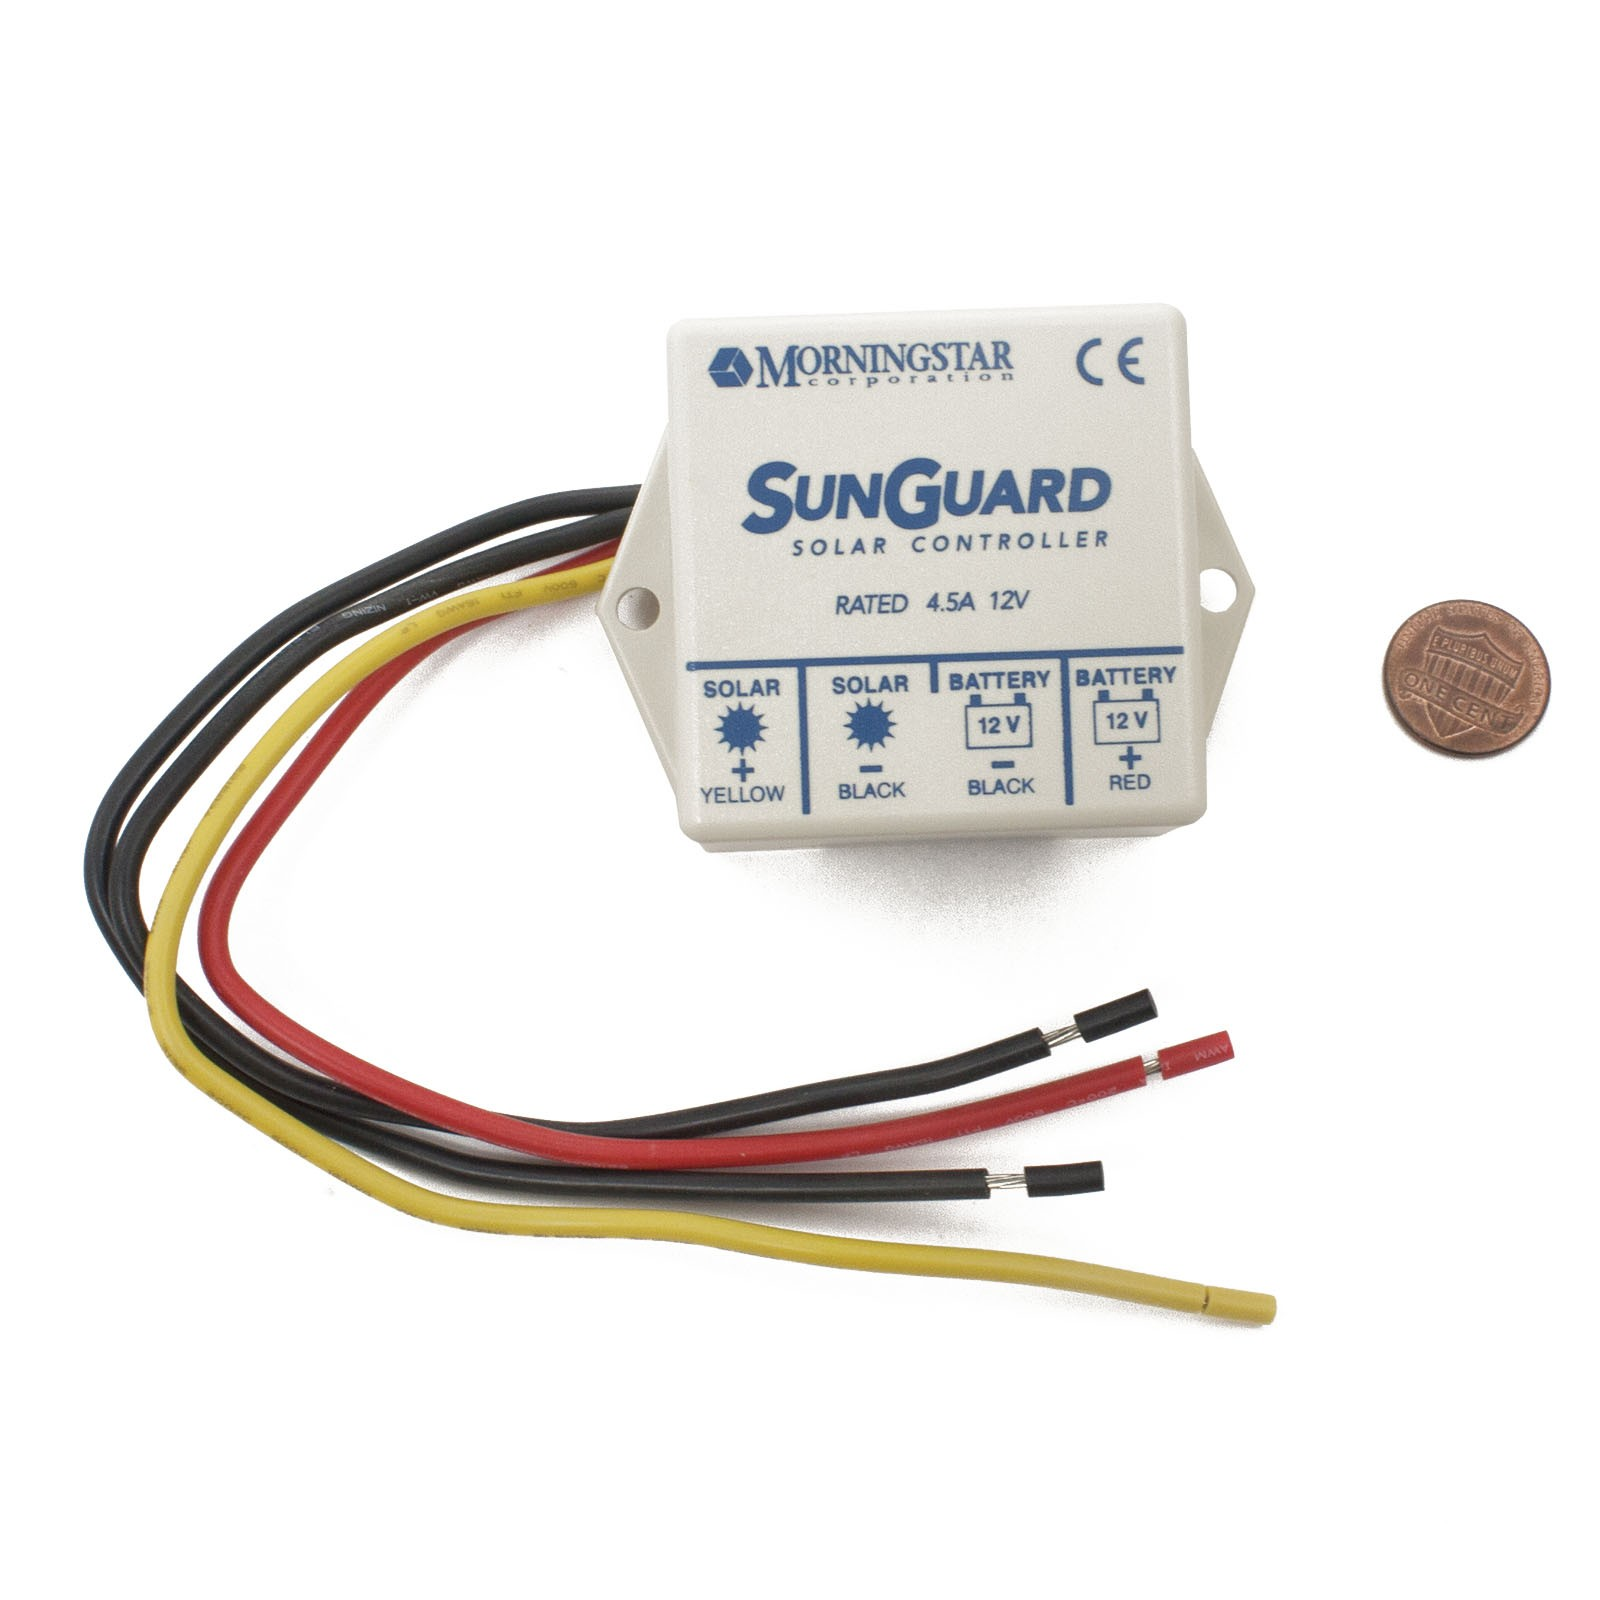 SG-4 Gate Opener Solar Panel Regulator, MS